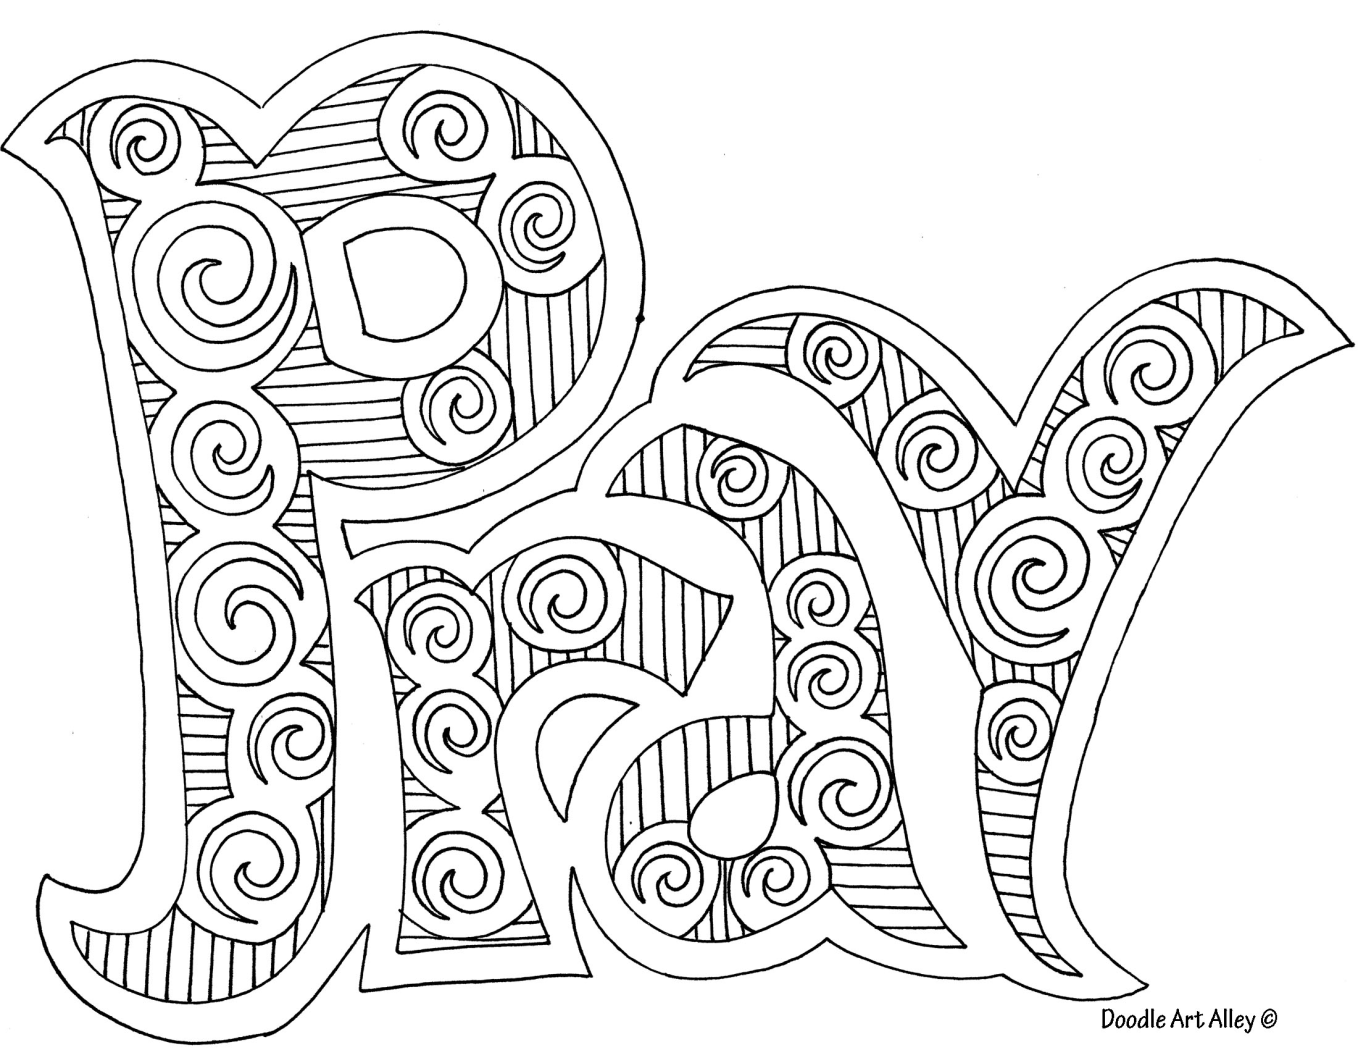 Coloring sheets with words - Pray Adult Religious Coloring Page I Want To Do This For My Prayer Journal